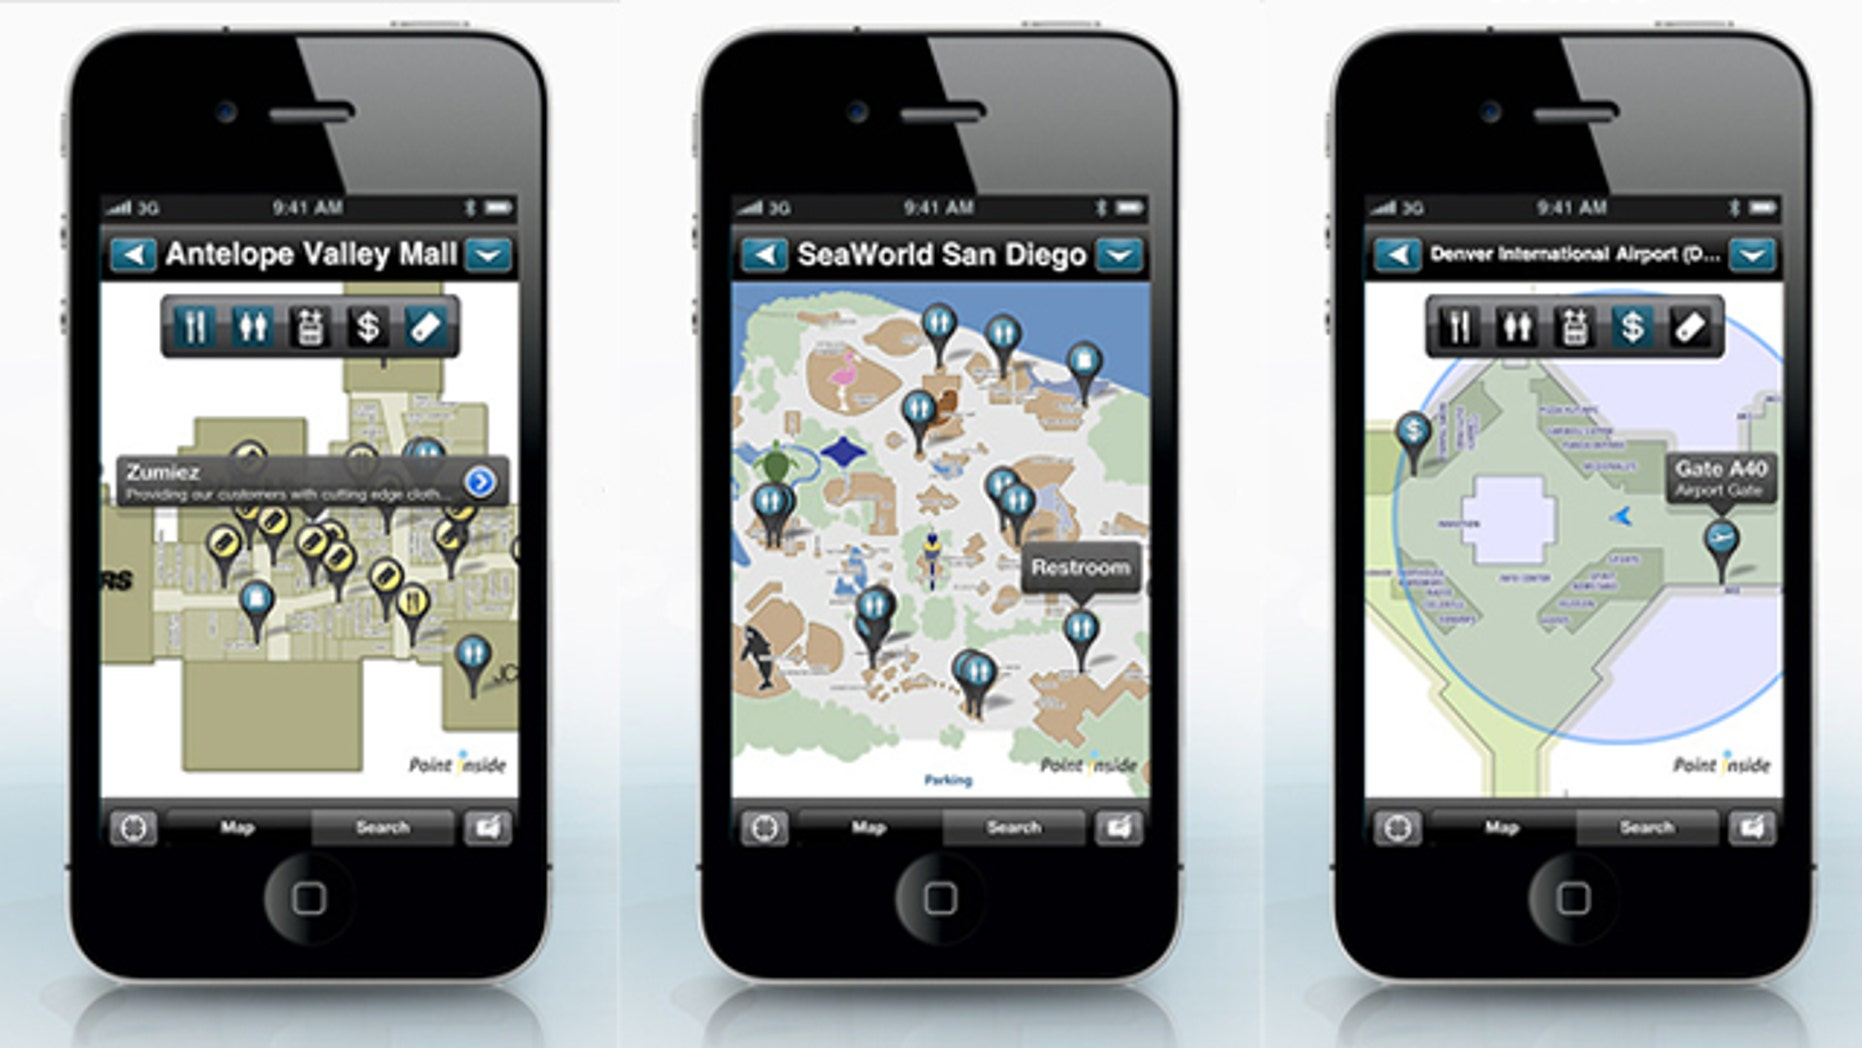 The Point Inside app provides indoor navigation for airport, malls, and theme parks.